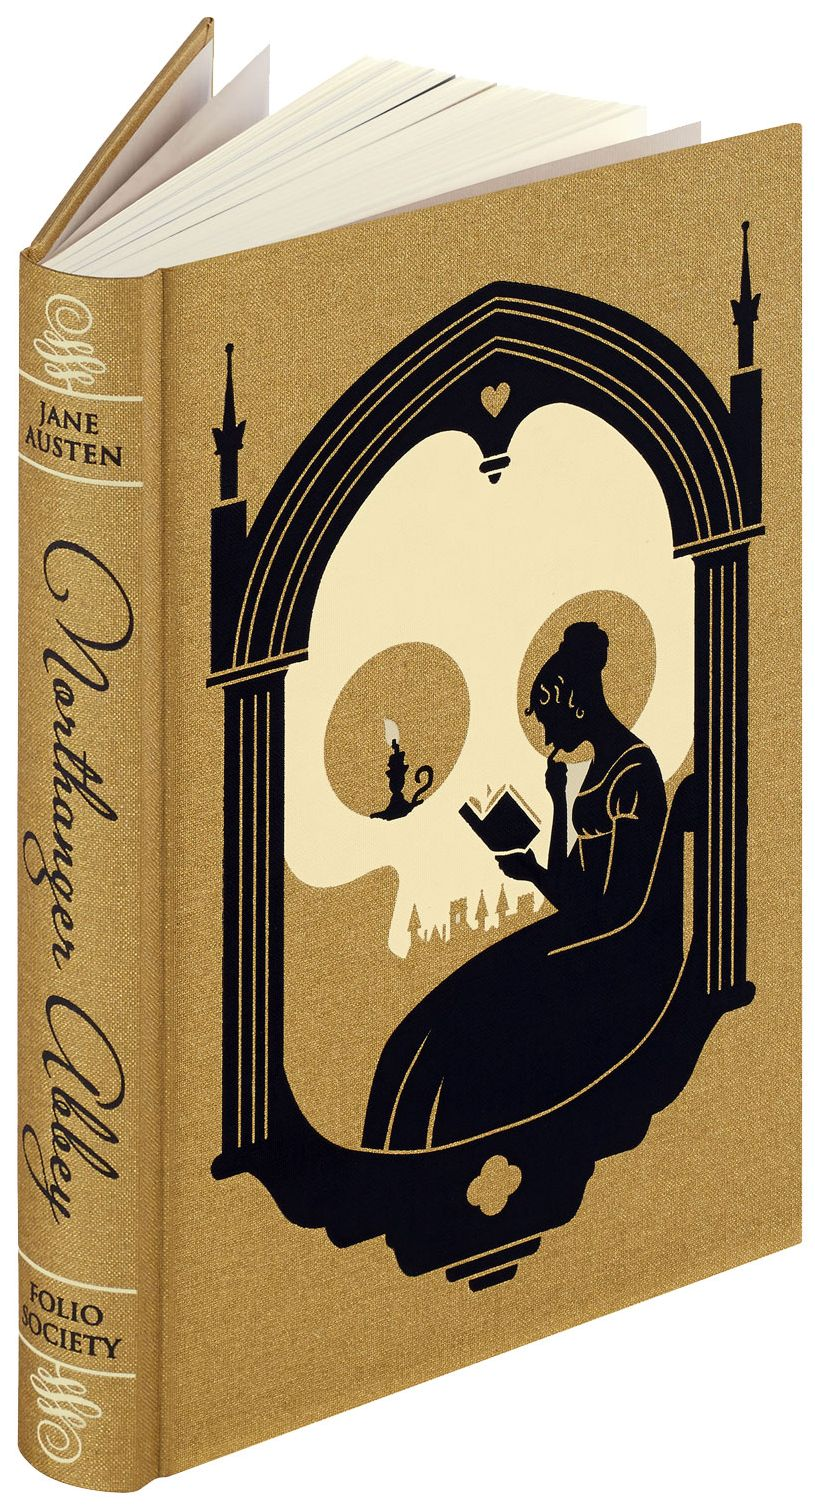 Northanger Abbey Folio Society